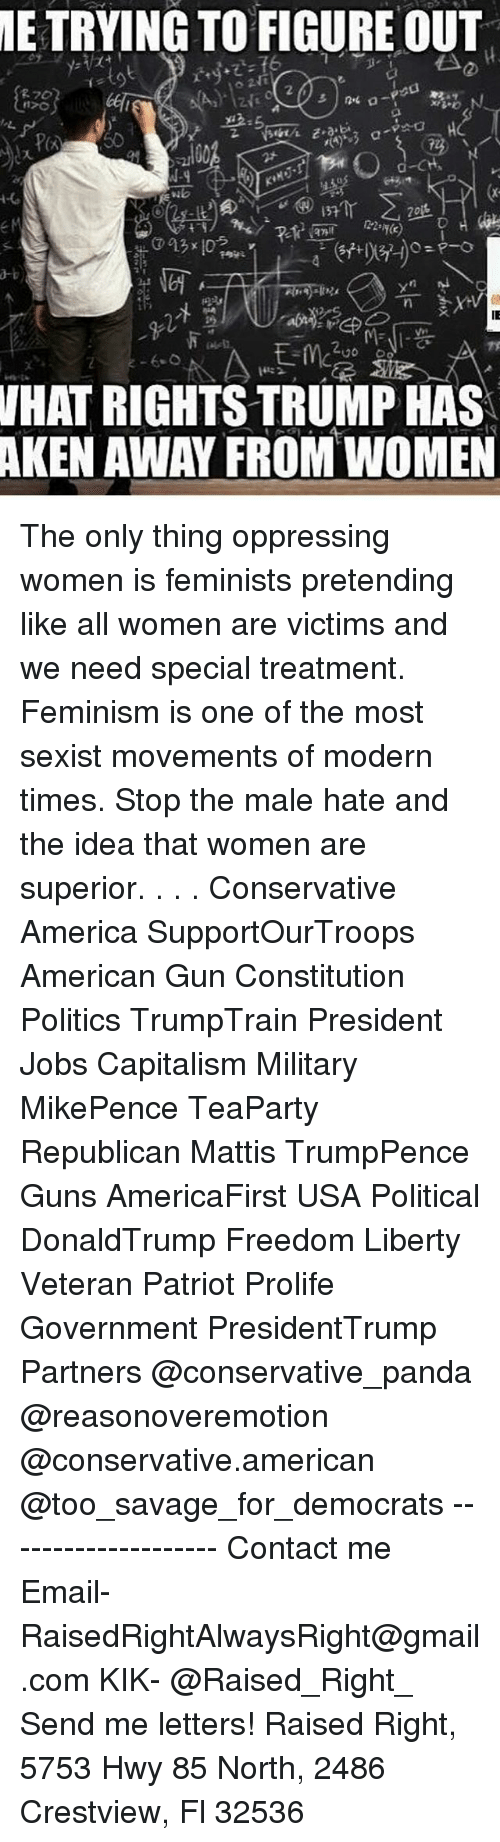 America, Feminism, and Guns: METRYING TO FIGURE OUT  WHAT RIGHTS TRUMP HAS  AKEN AWAY FROM WOMEN The only thing oppressing women is feminists pretending like all women are victims and we need special treatment. Feminism is one of the most sexist movements of modern times. Stop the male hate and the idea that women are superior. . . . Conservative America SupportOurTroops American Gun Constitution Politics TrumpTrain President Jobs Capitalism Military MikePence TeaParty Republican Mattis TrumpPence Guns AmericaFirst USA Political DonaldTrump Freedom Liberty Veteran Patriot Prolife Government PresidentTrump Partners @conservative_panda @reasonoveremotion @conservative.american @too_savage_for_democrats -------------------- Contact me ●Email- RaisedRightAlwaysRight@gmail.com ●KIK- @Raised_Right_ ●Send me letters! Raised Right, 5753 Hwy 85 North, 2486 Crestview, Fl 32536